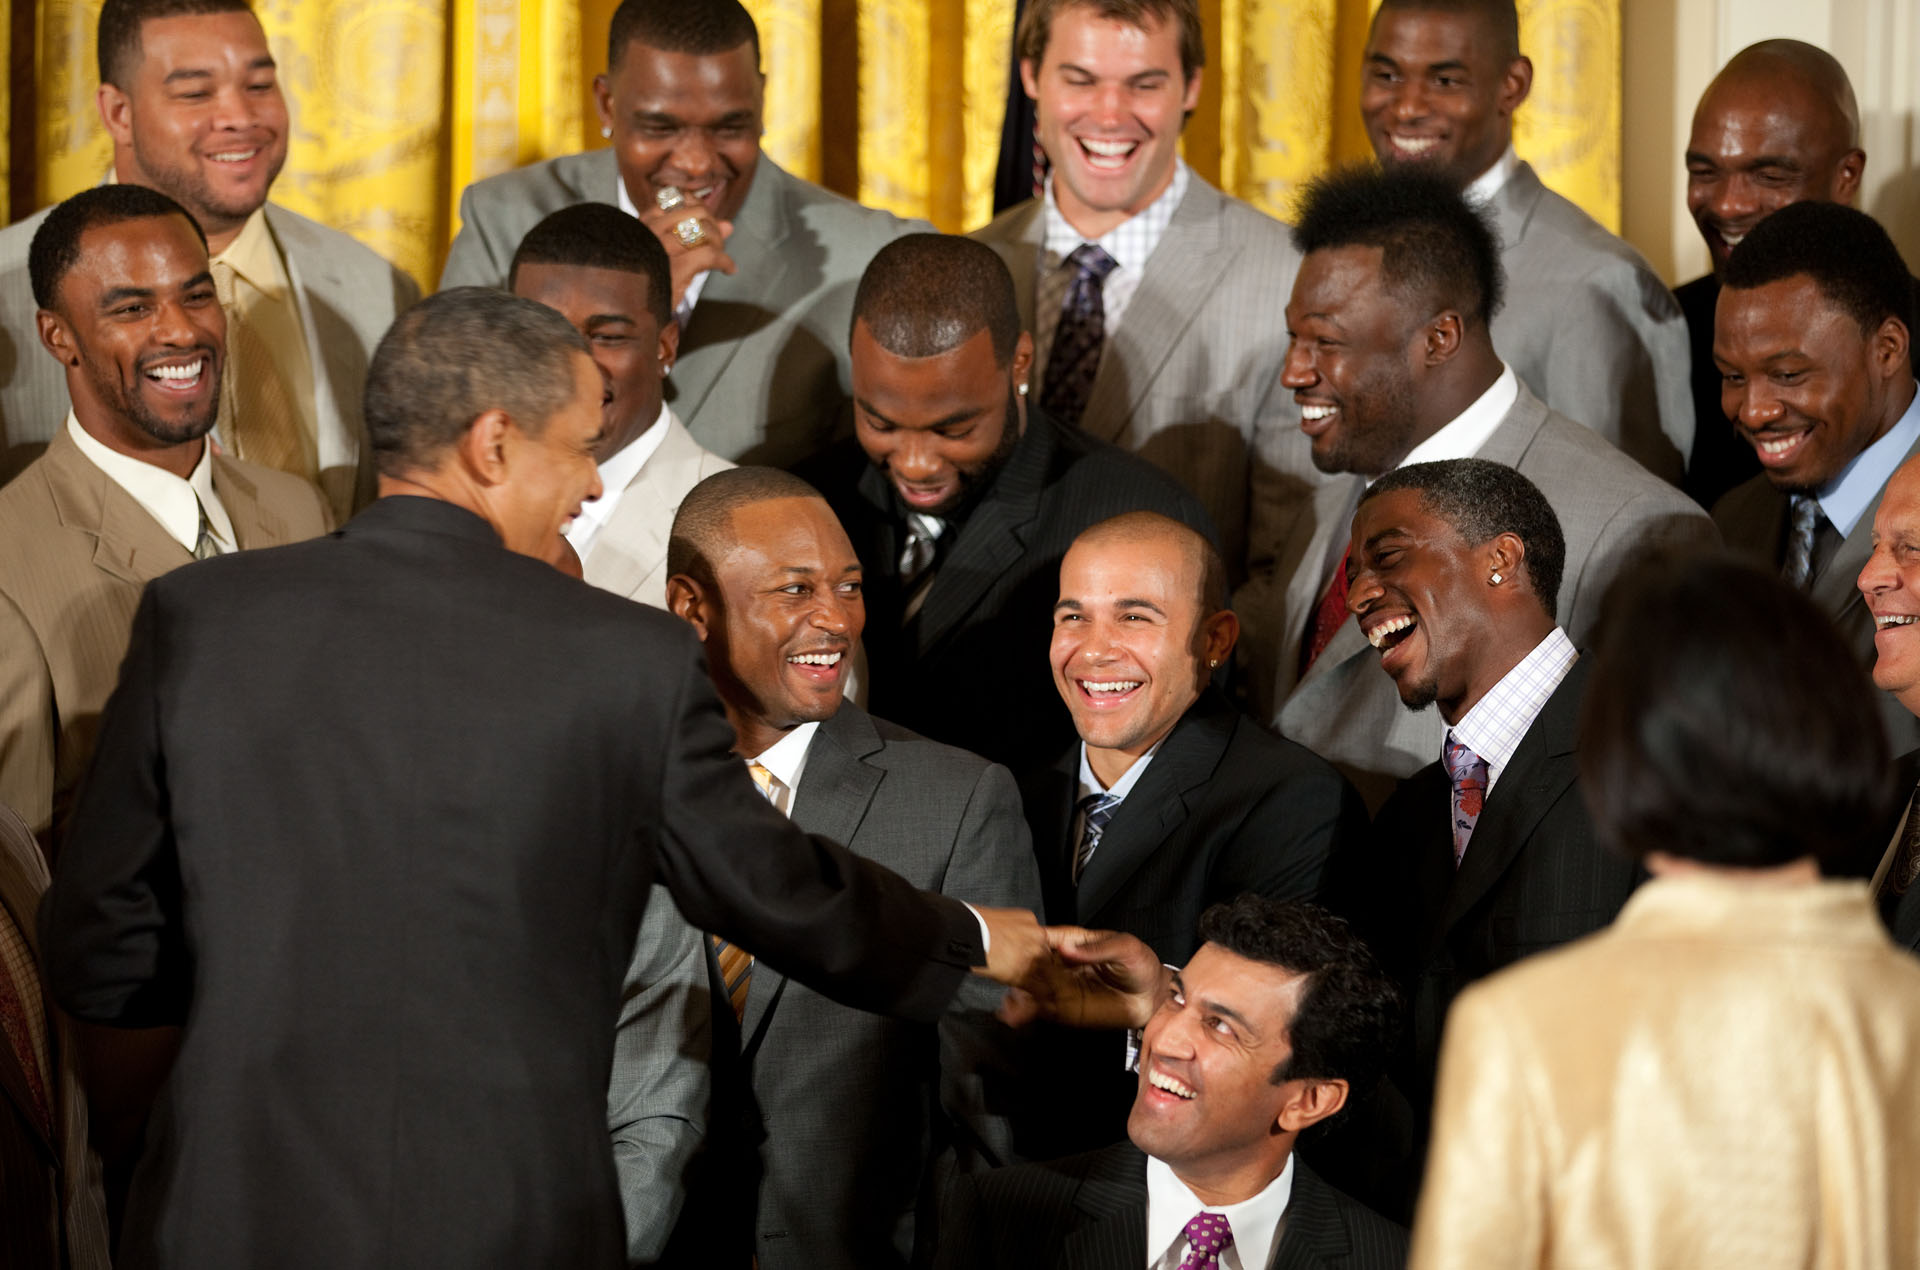 President Obama Welcomes the New Orleans Saints